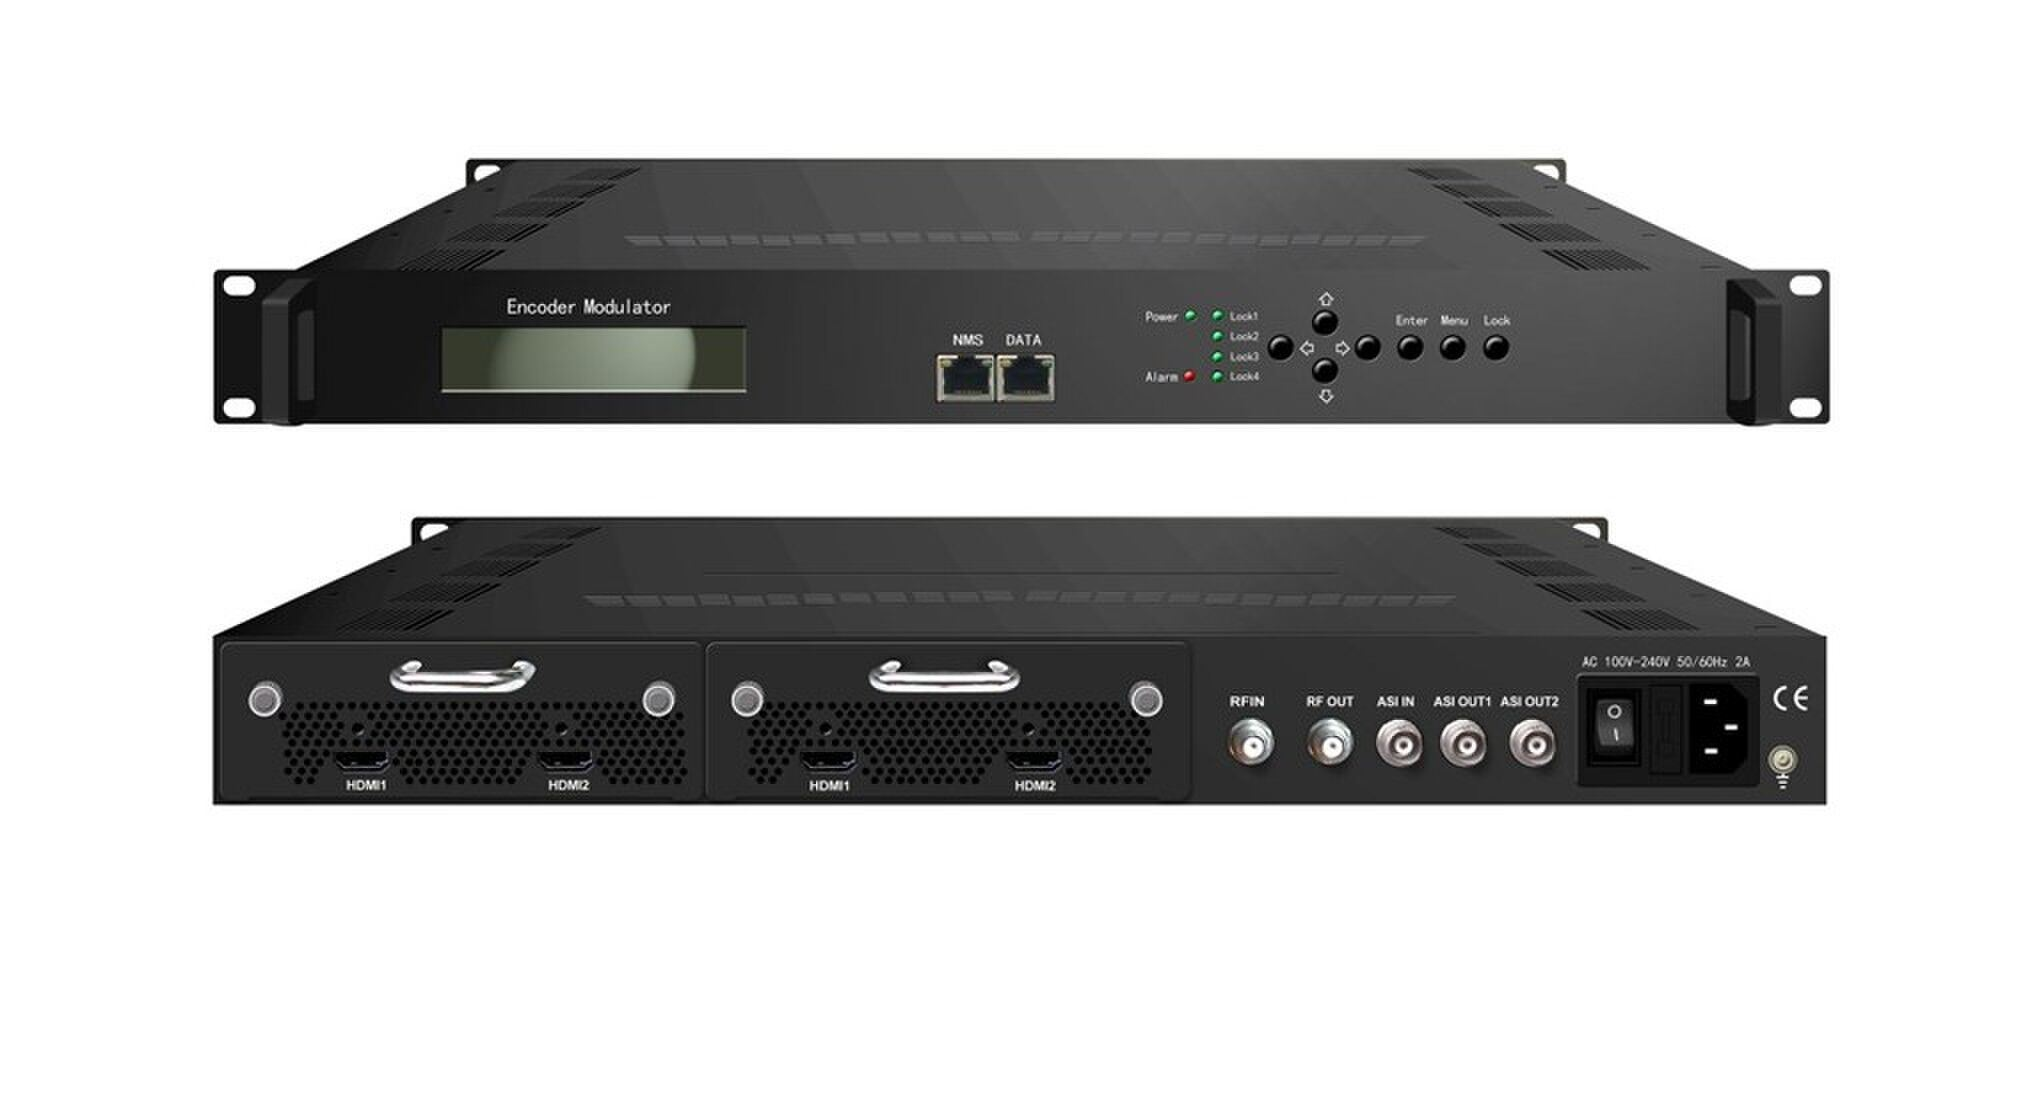 Up To 1920108050P 60P Supported MPEG4 HD 1920108050I 60I MPEG2 2 HDMI In For Backup 1ASI RF ISDB T Out